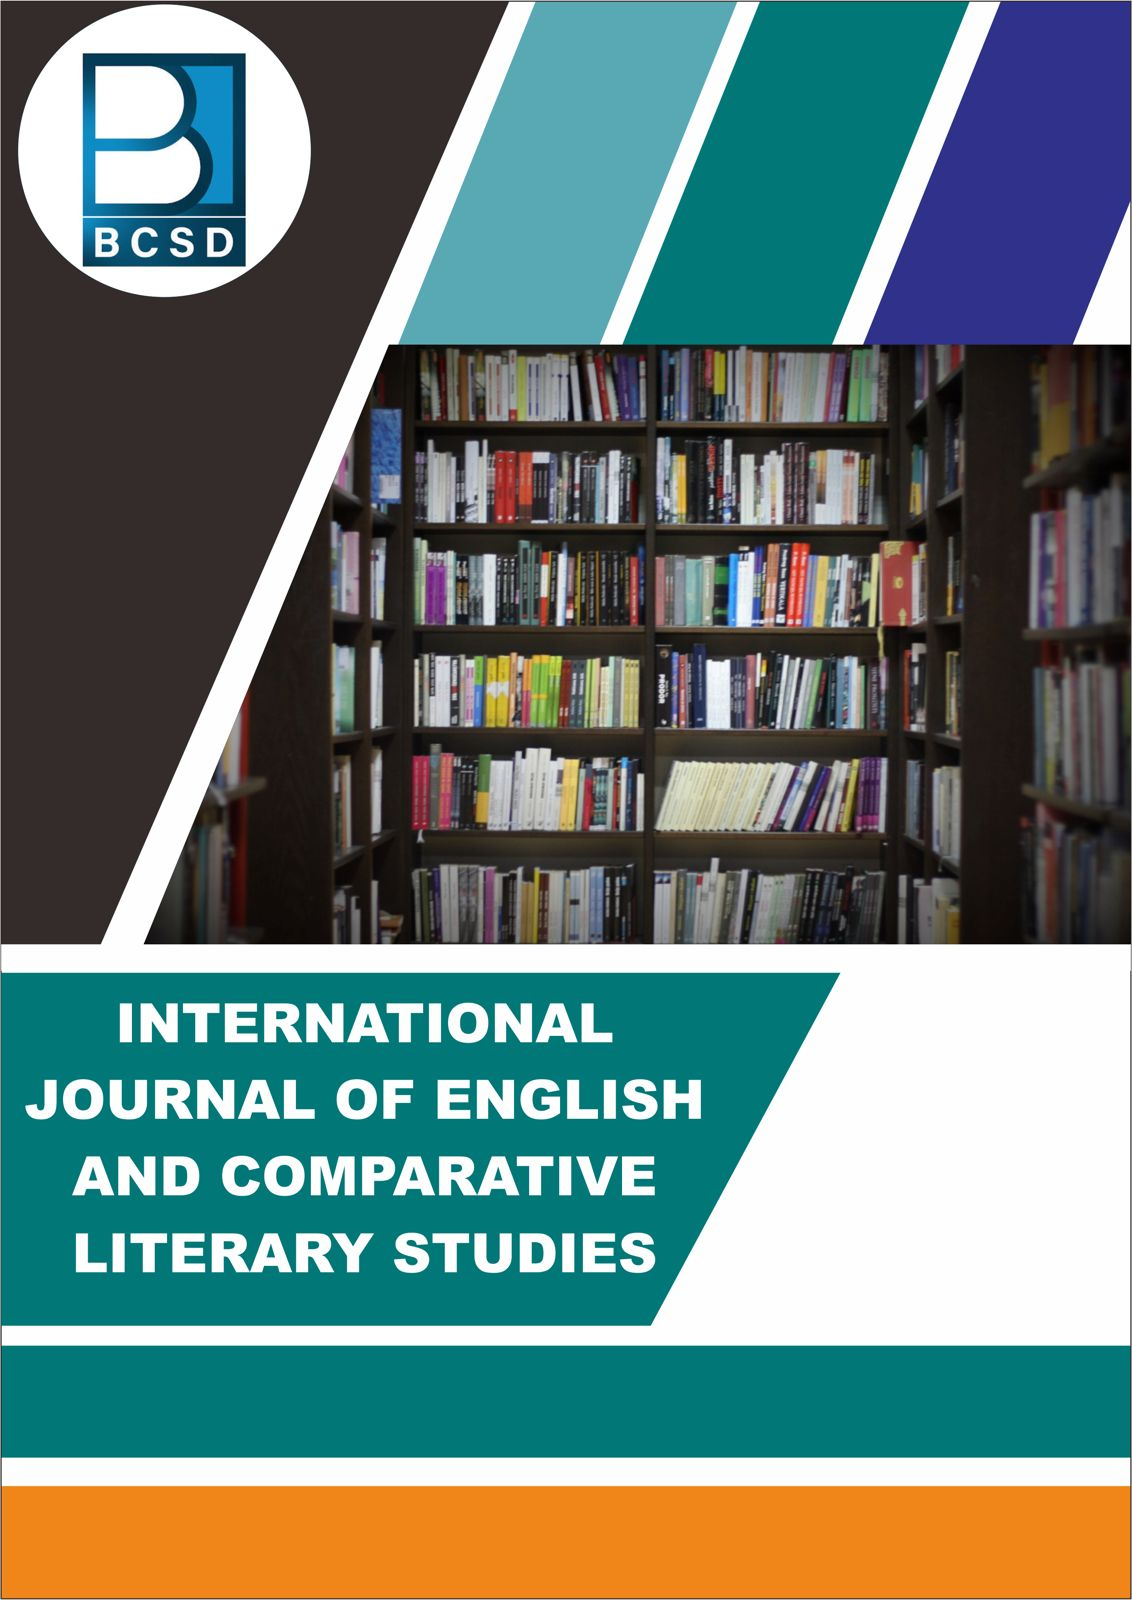 View Vol. 2 No. 5 (2021):  International Journal of English and Comparative Literary Studies